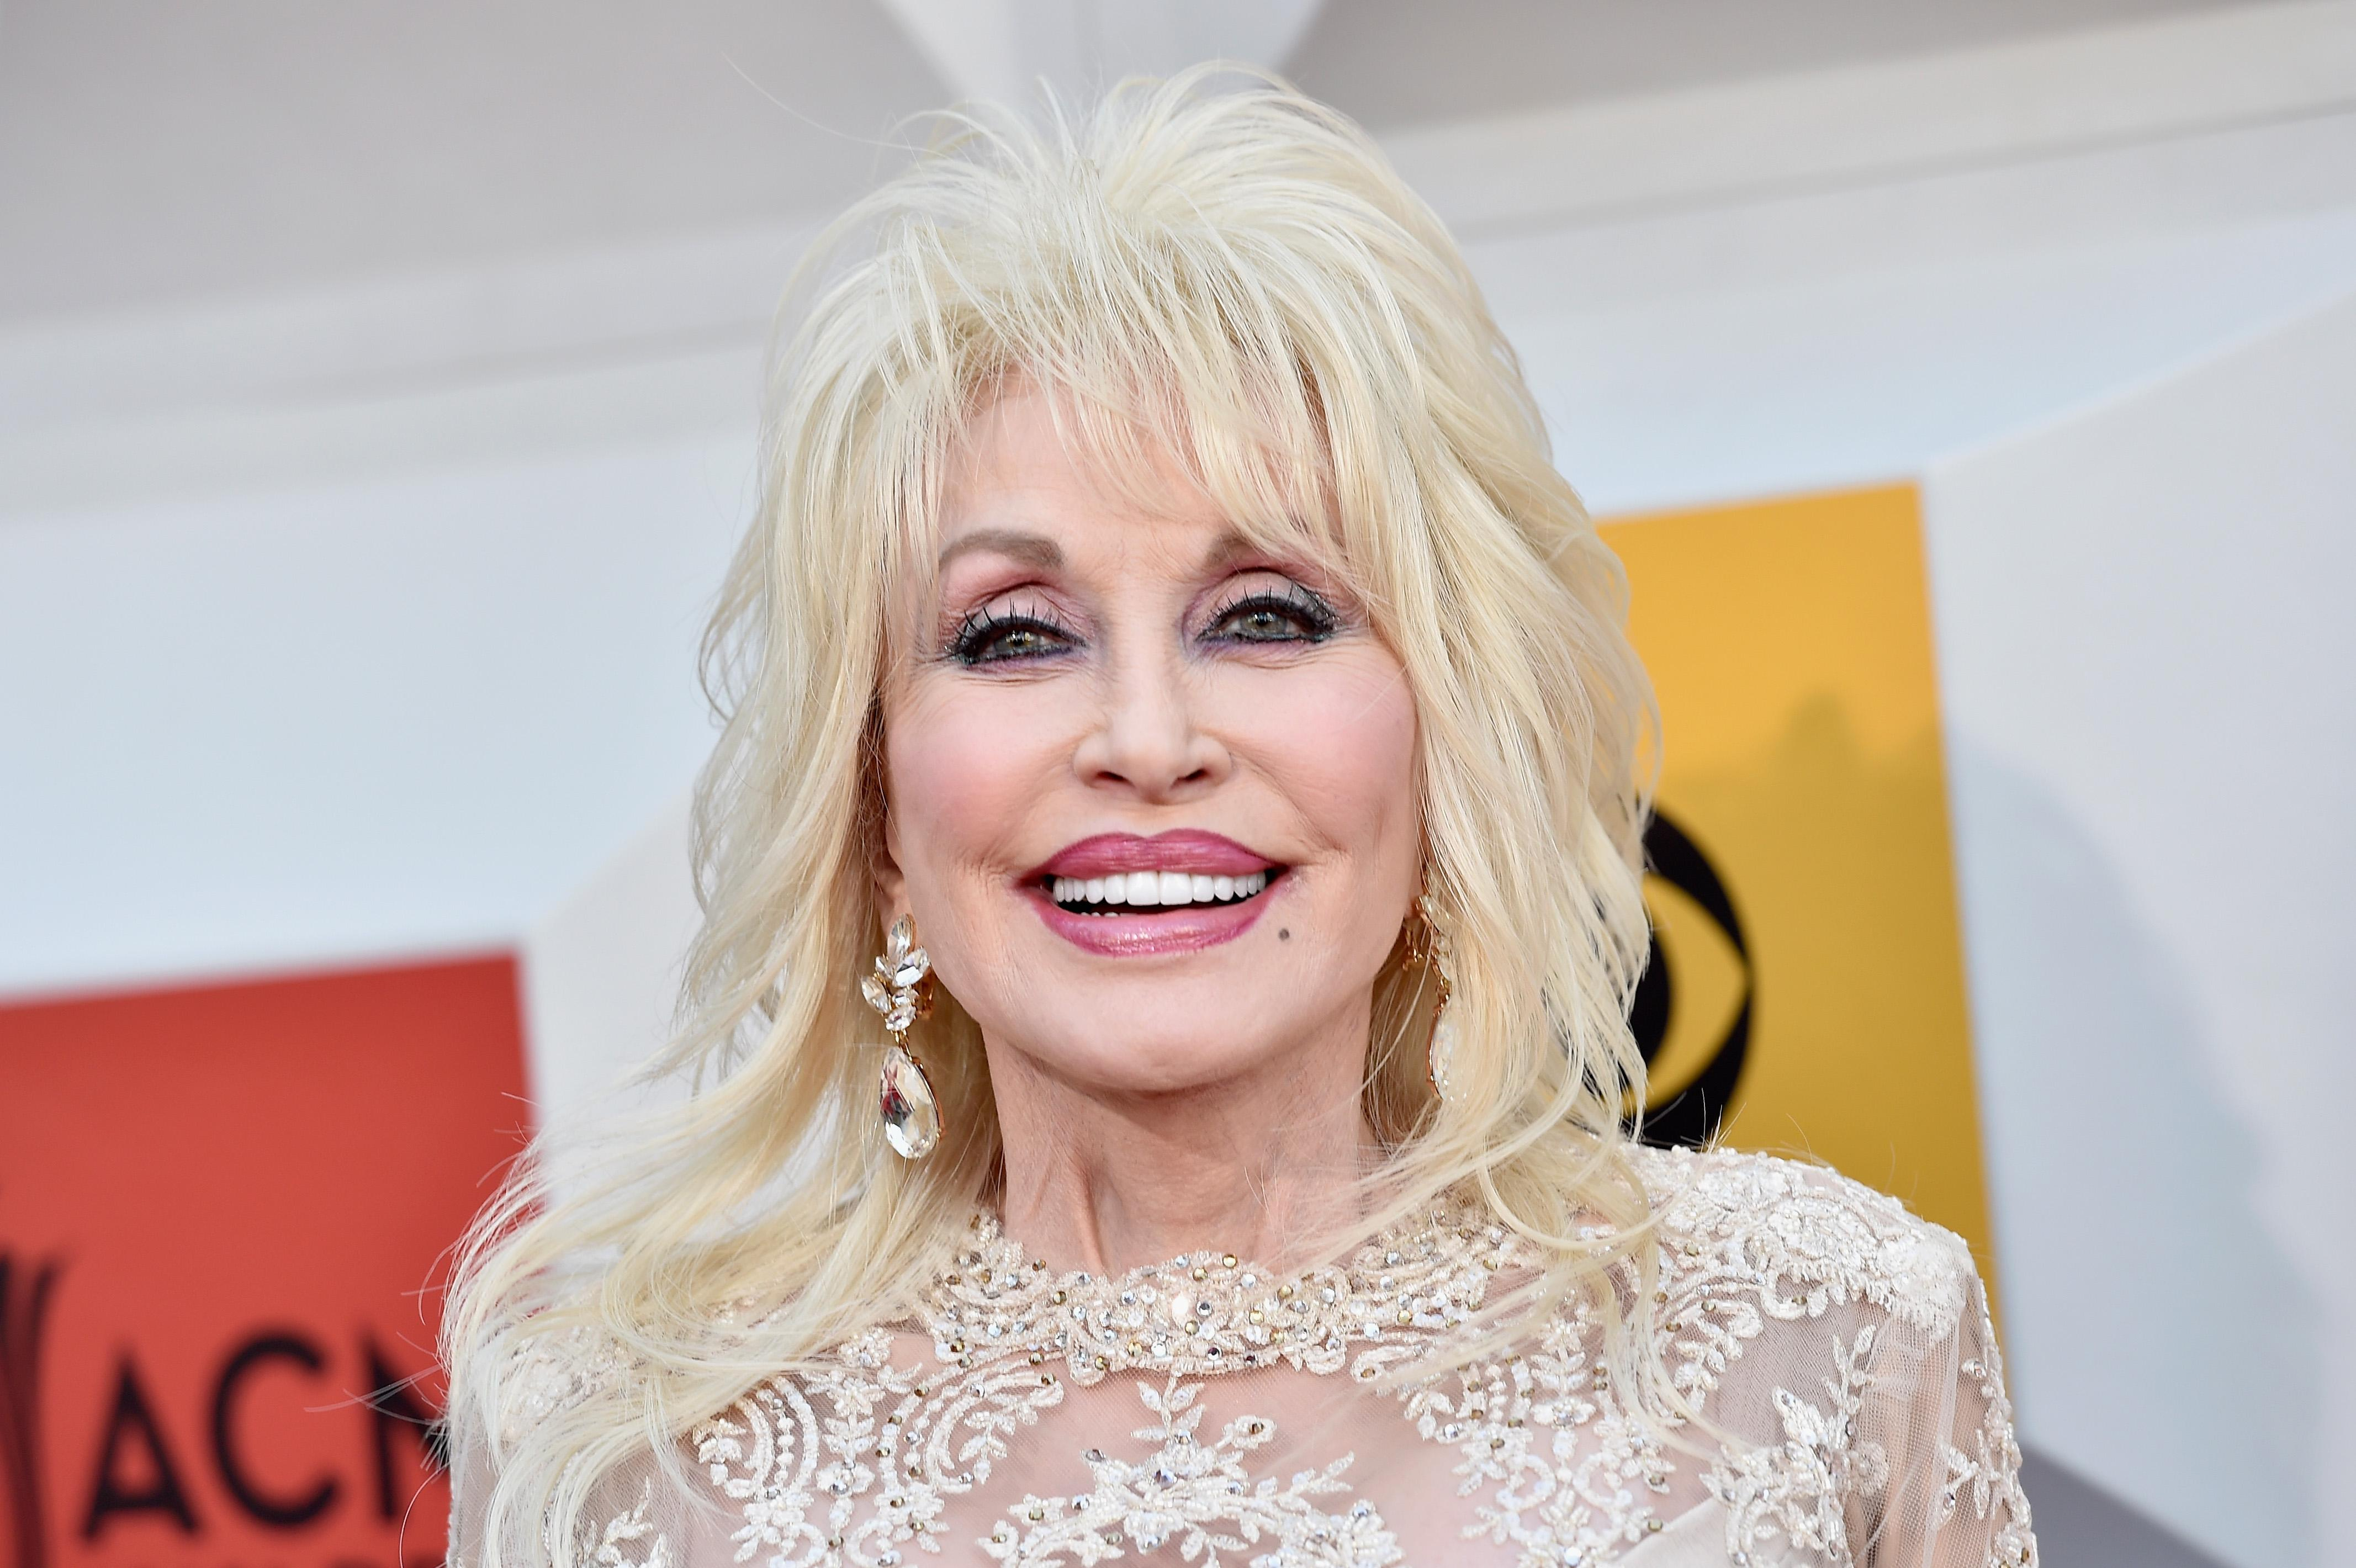 Dolly Parton's Brother Floyd Parton Dead at 61